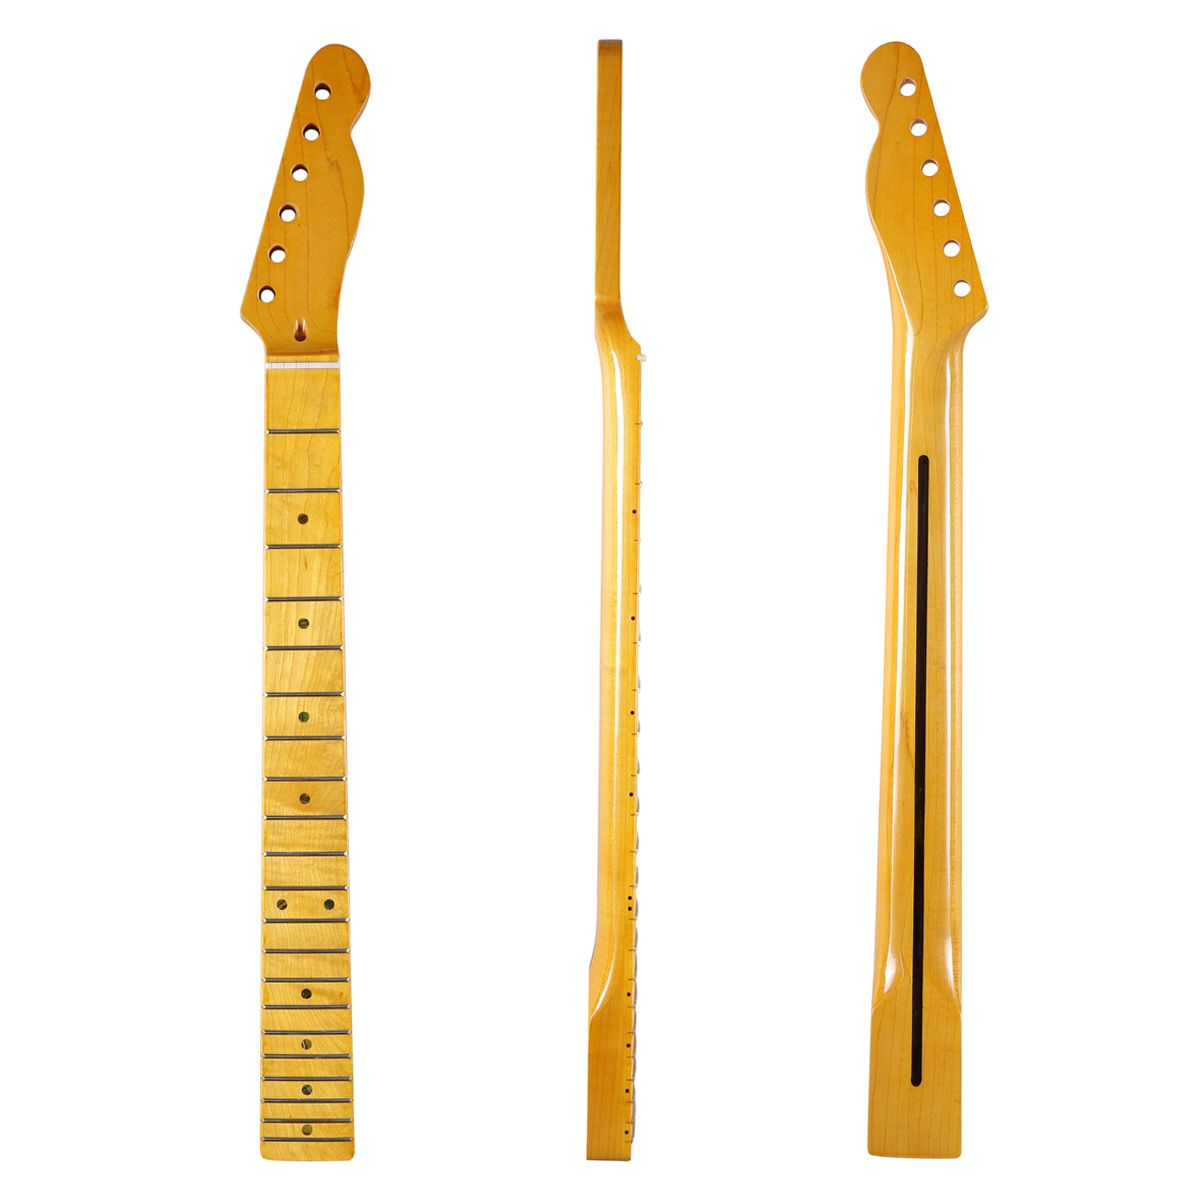 KAISH 21 Fret Glossy Canadian Maple Tele Guitar Neck with 10mm Tuner Holes Abalone Inlay and Bone Nut for Telecaster